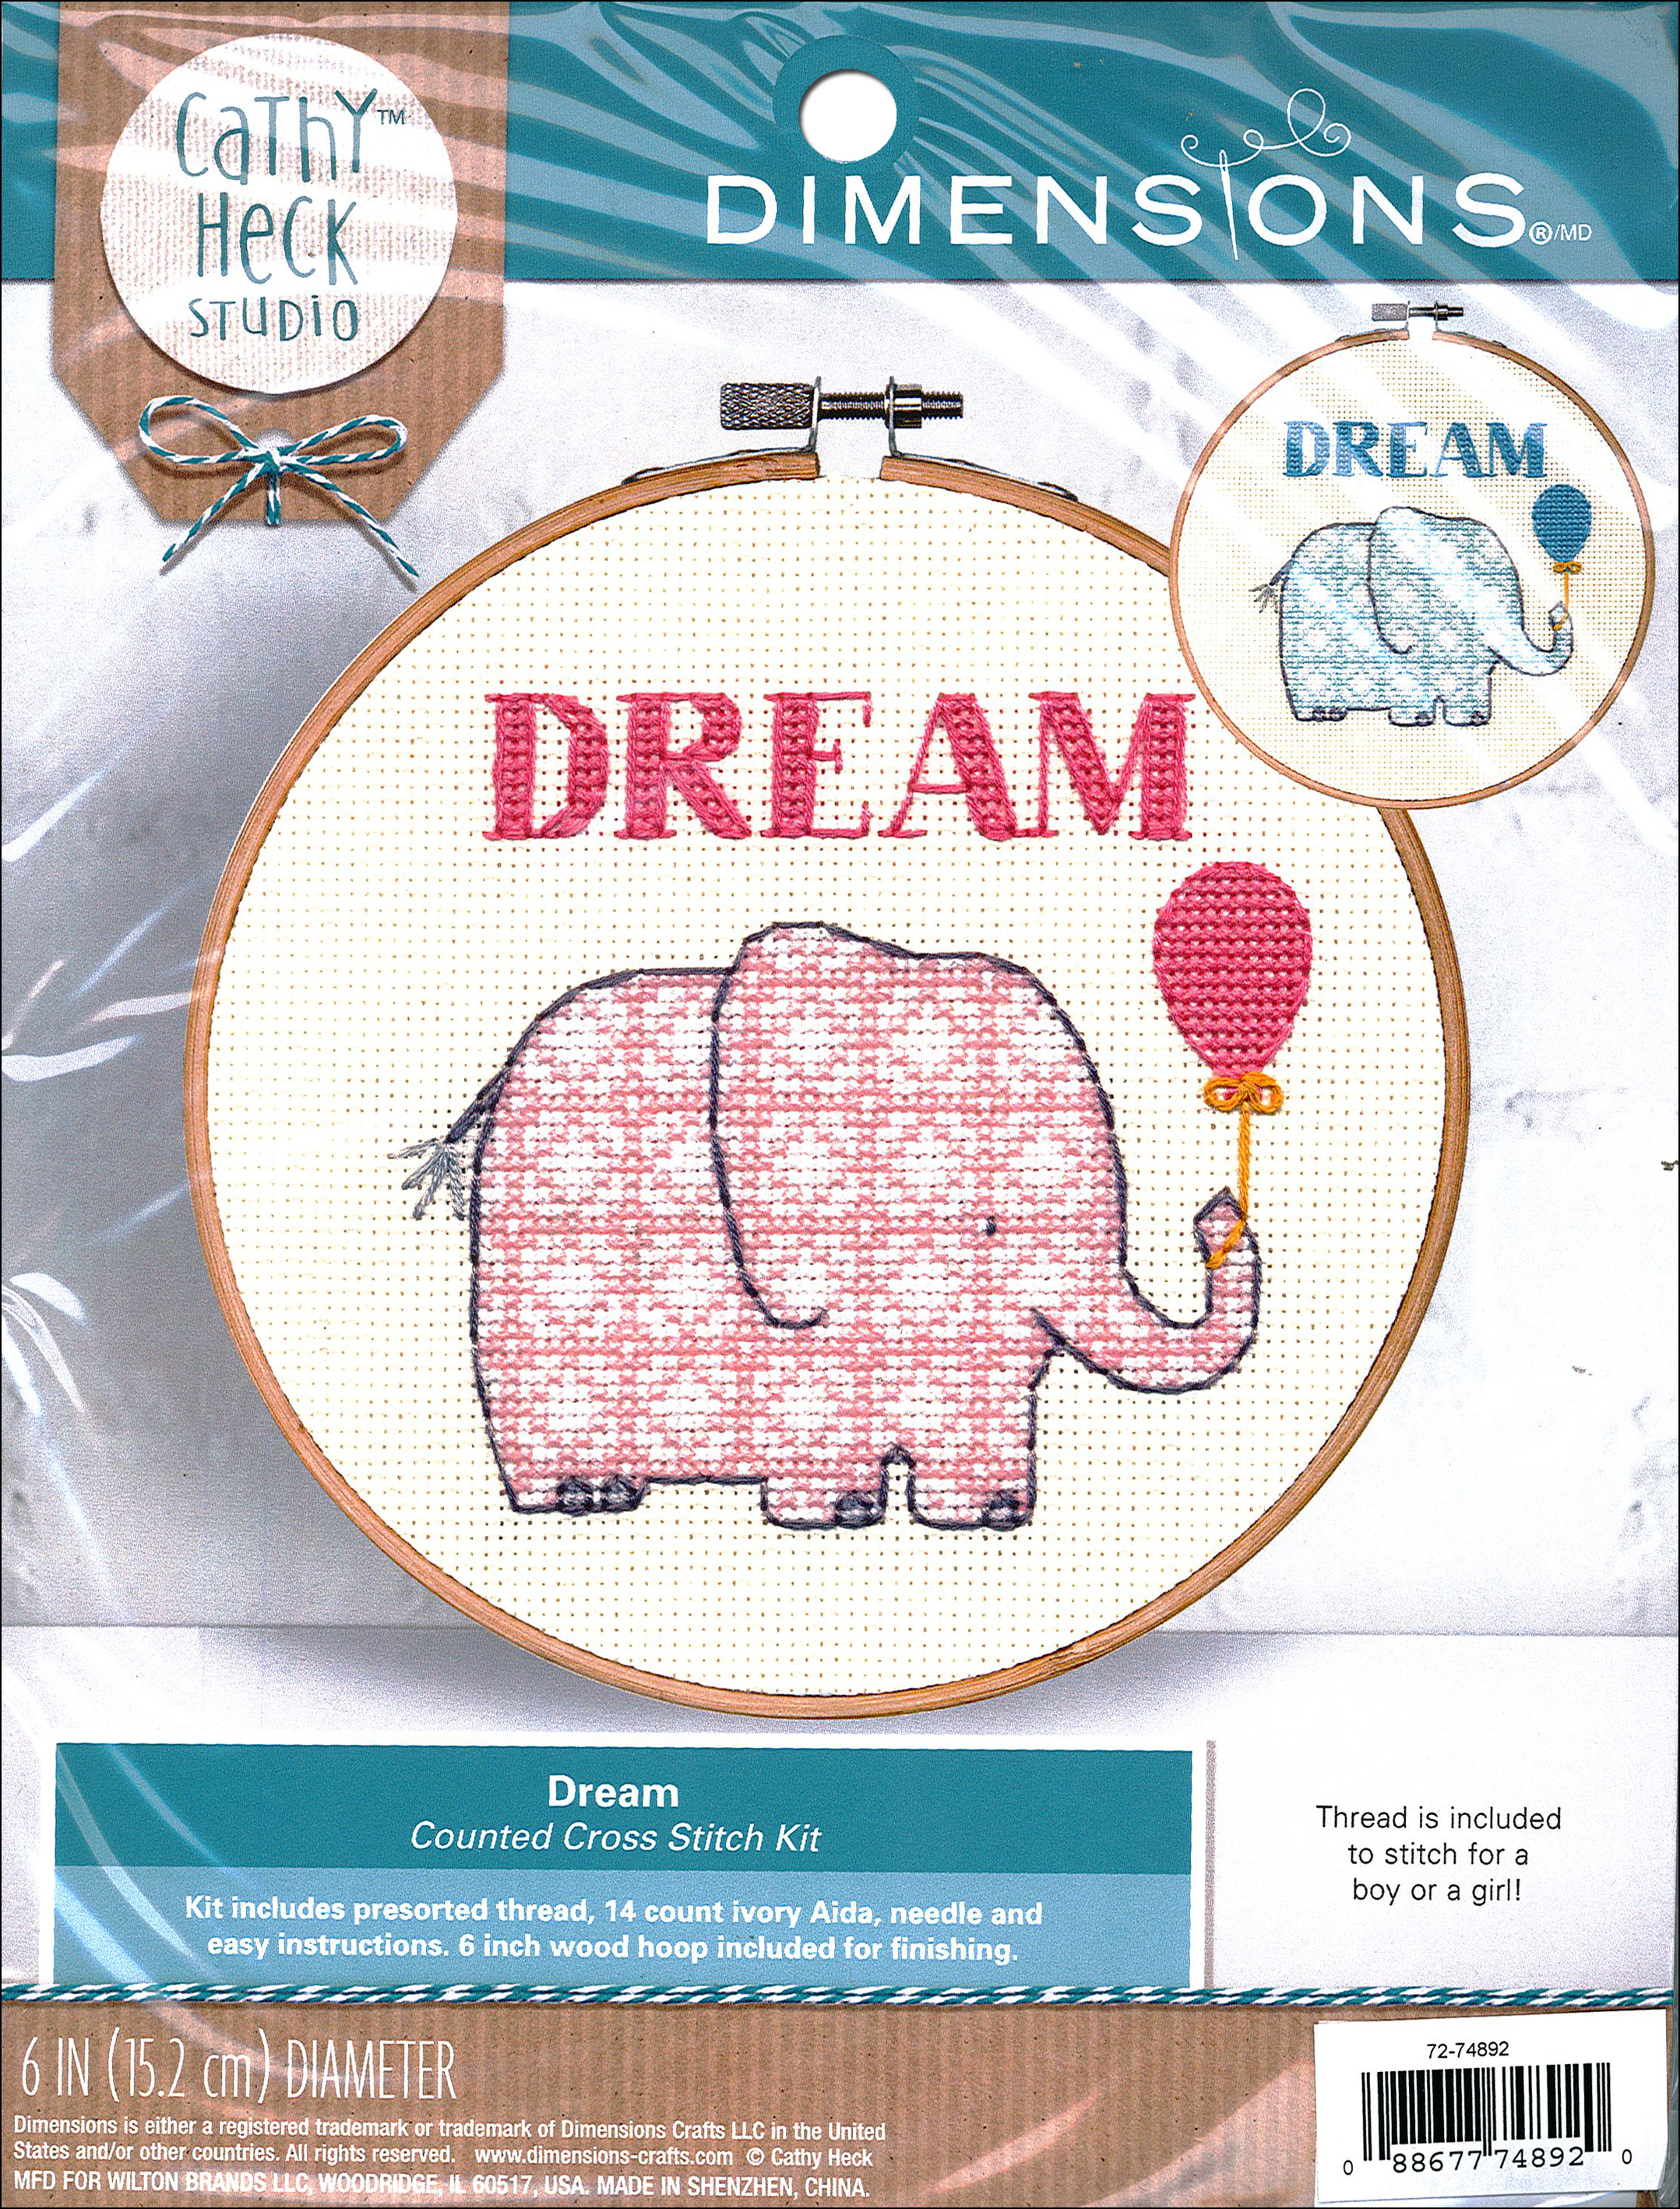 Dimensions Cross Stitch Kit 6 in  Cathy Heck Dream 1